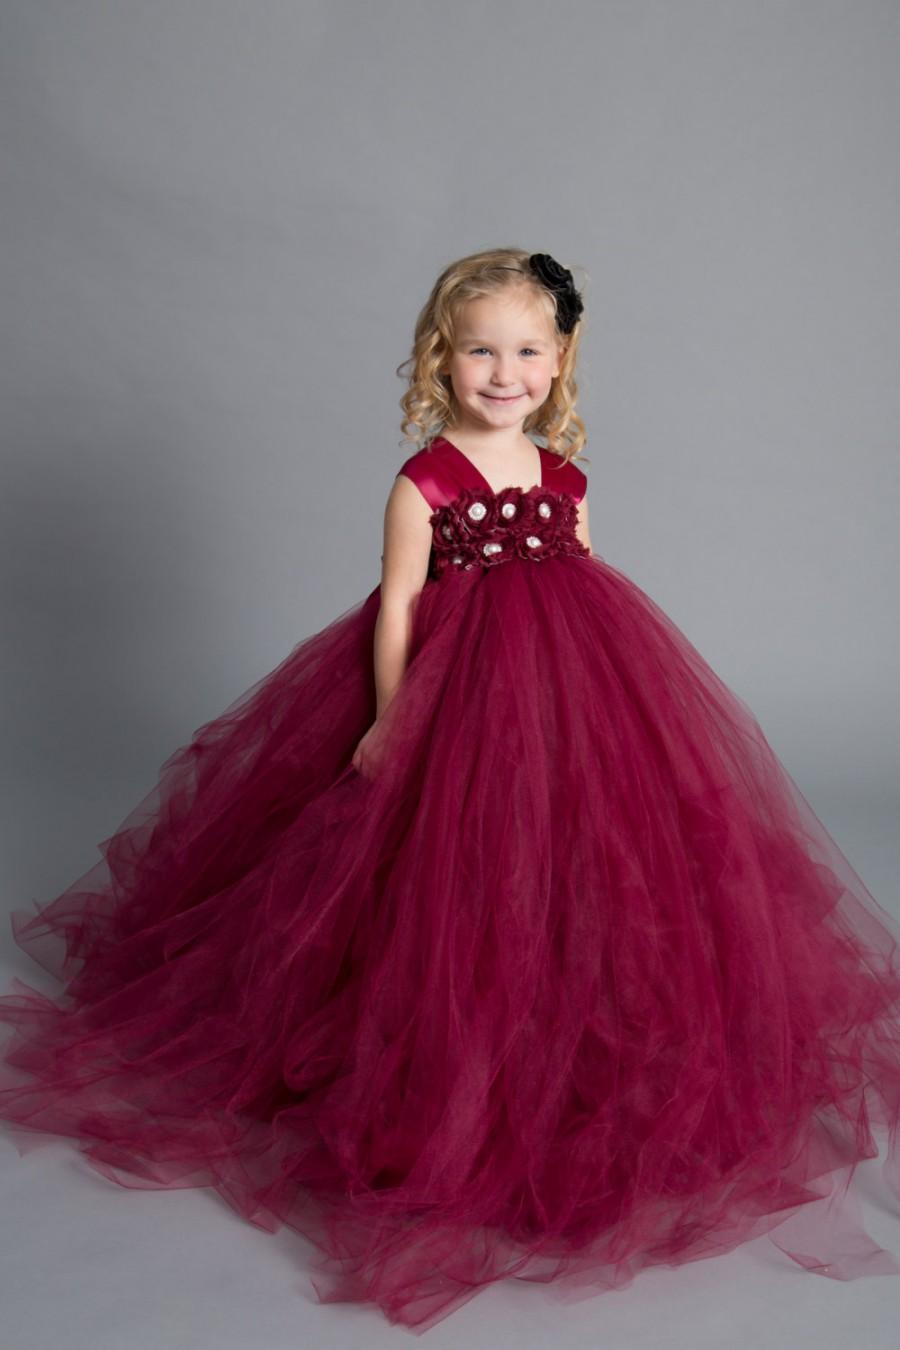 Wedding - Flower girl dress - tutu dress - tulle dress -Holiday dress - Pageant dress - wedding-Christmas dress-Princess dress -Wine girl flower dress